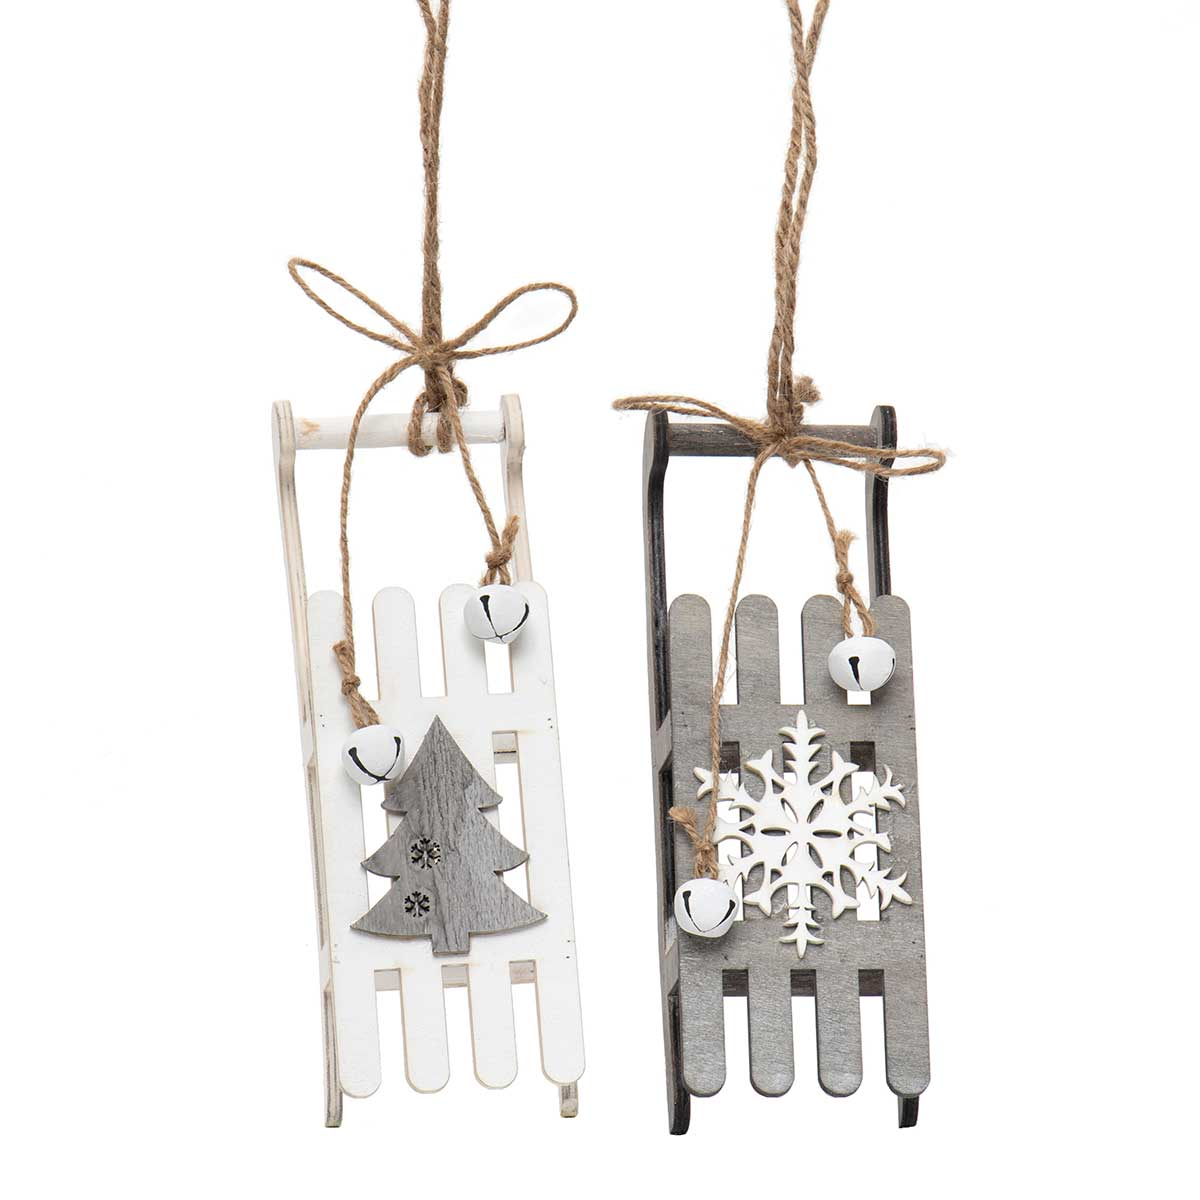 GREY/WHITE WOOD SLED ORNAMENT WITH WHITE